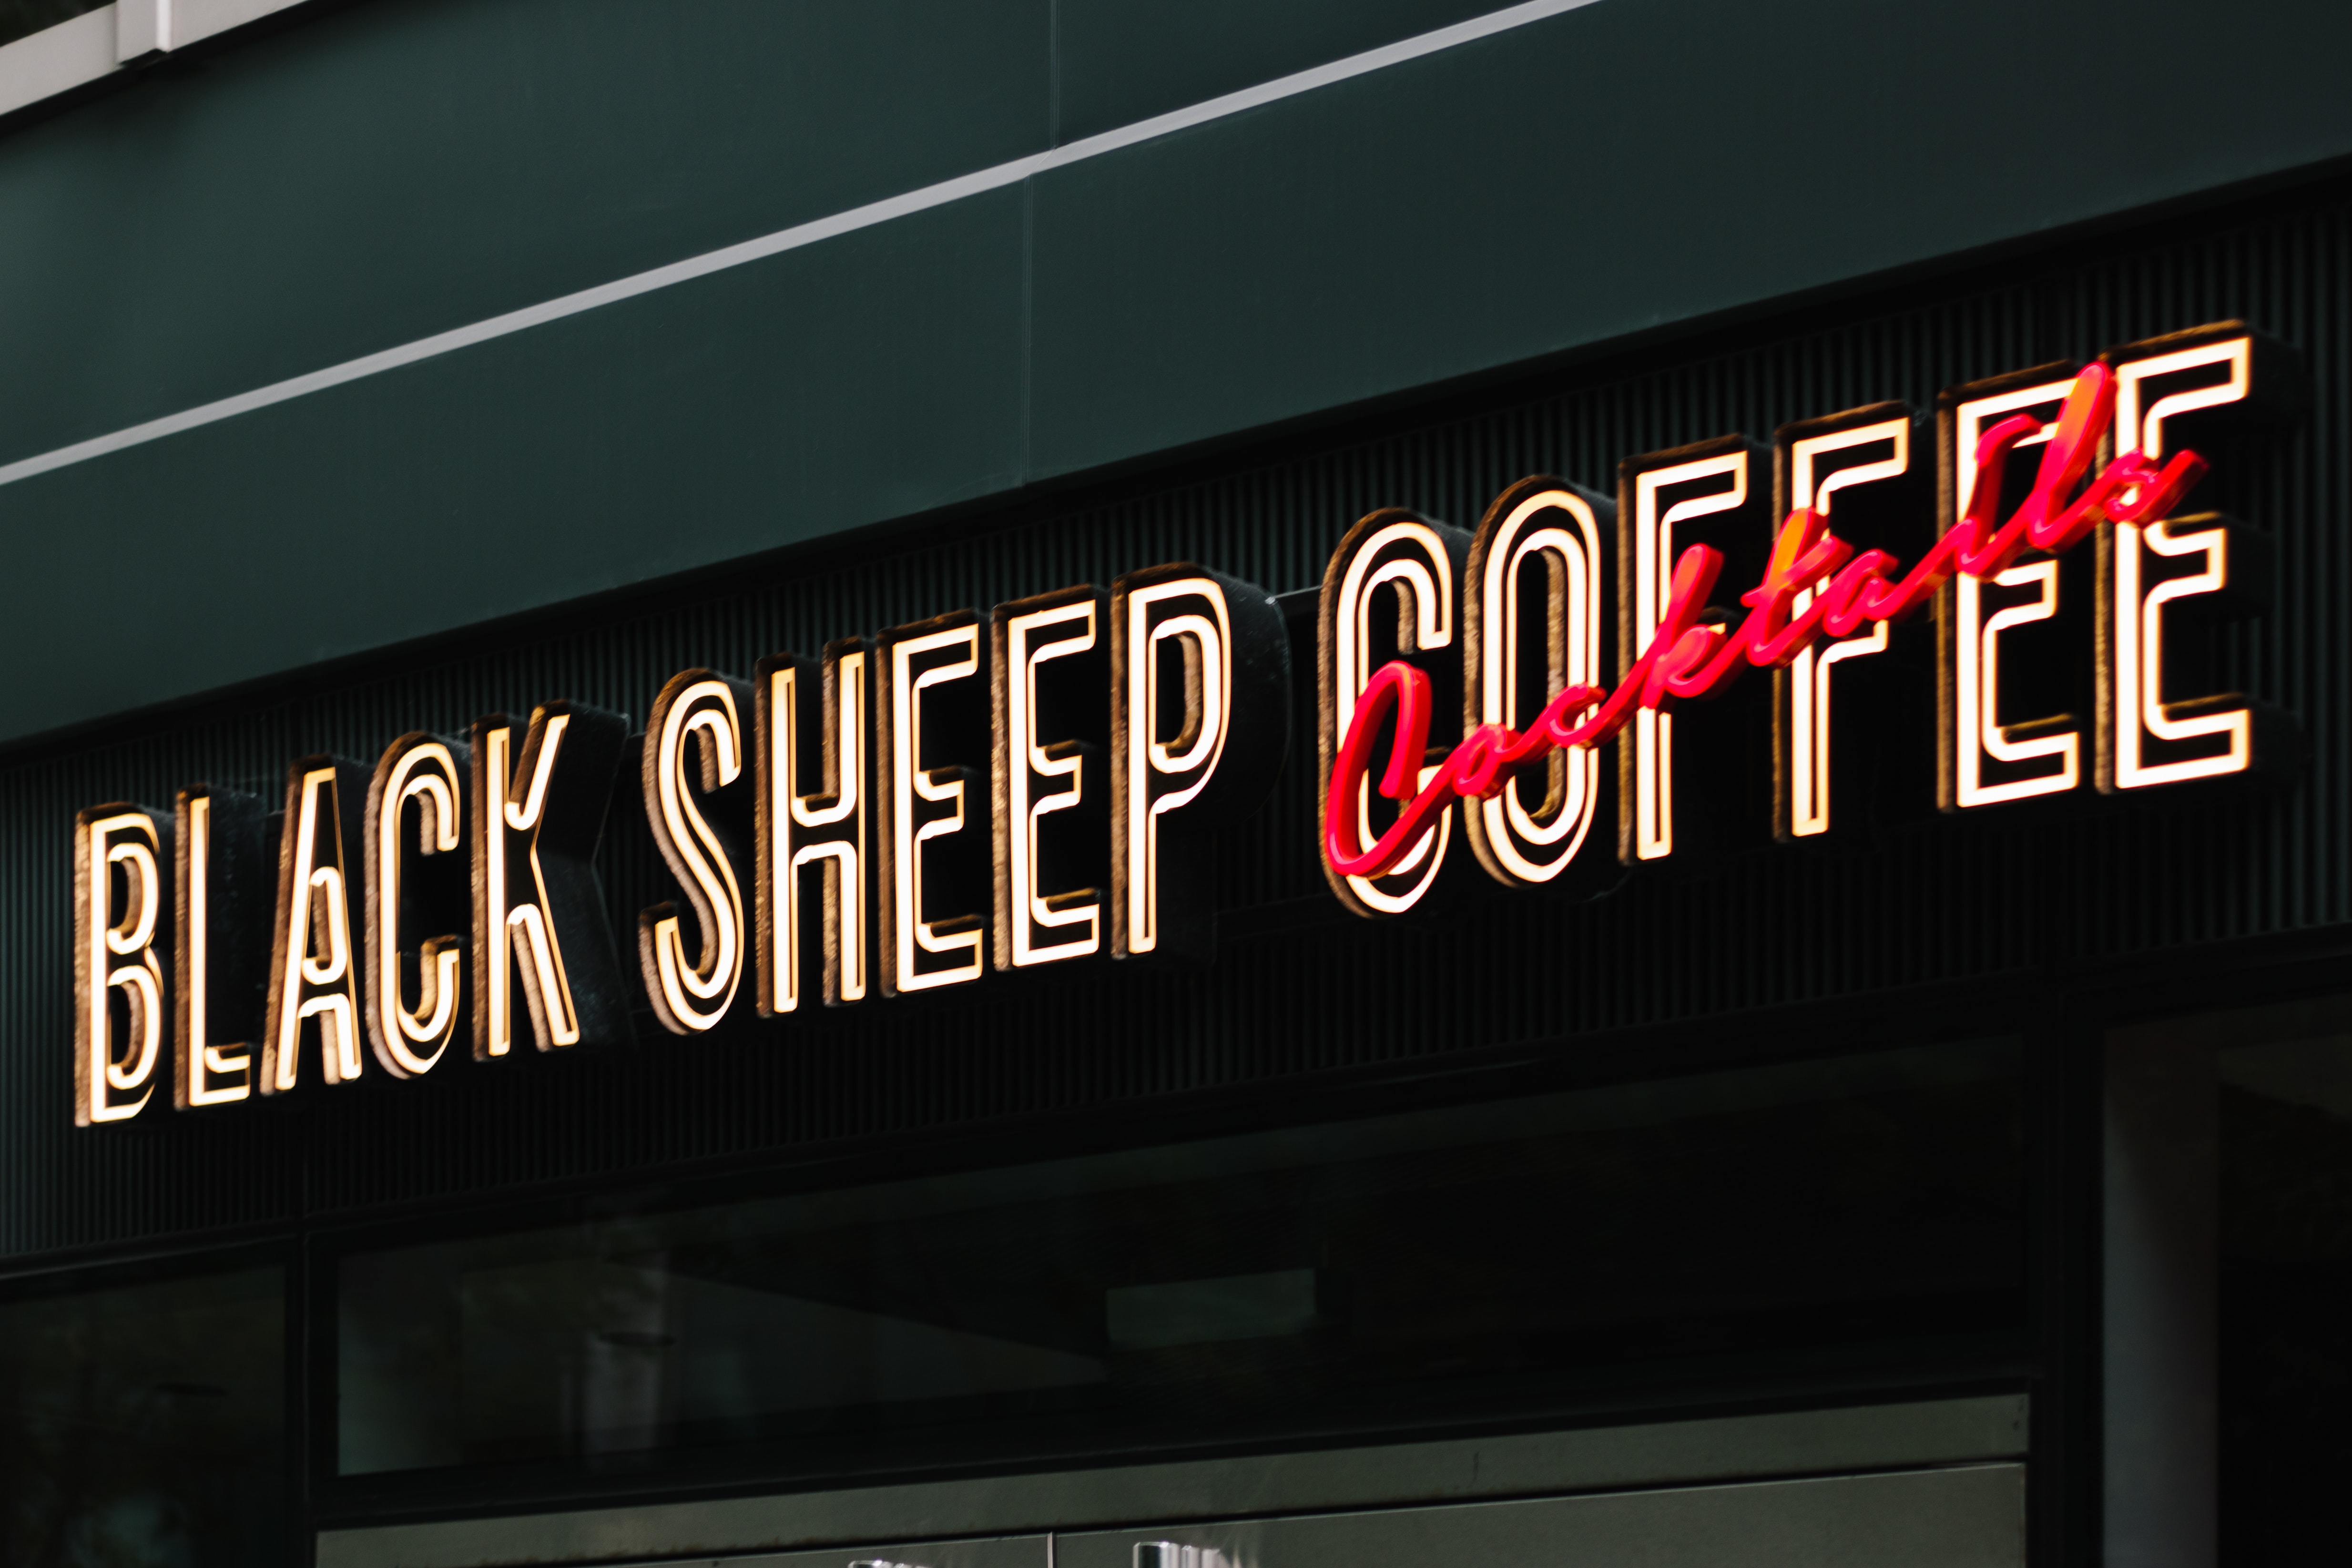 Black Sheep Coffee Neon sign